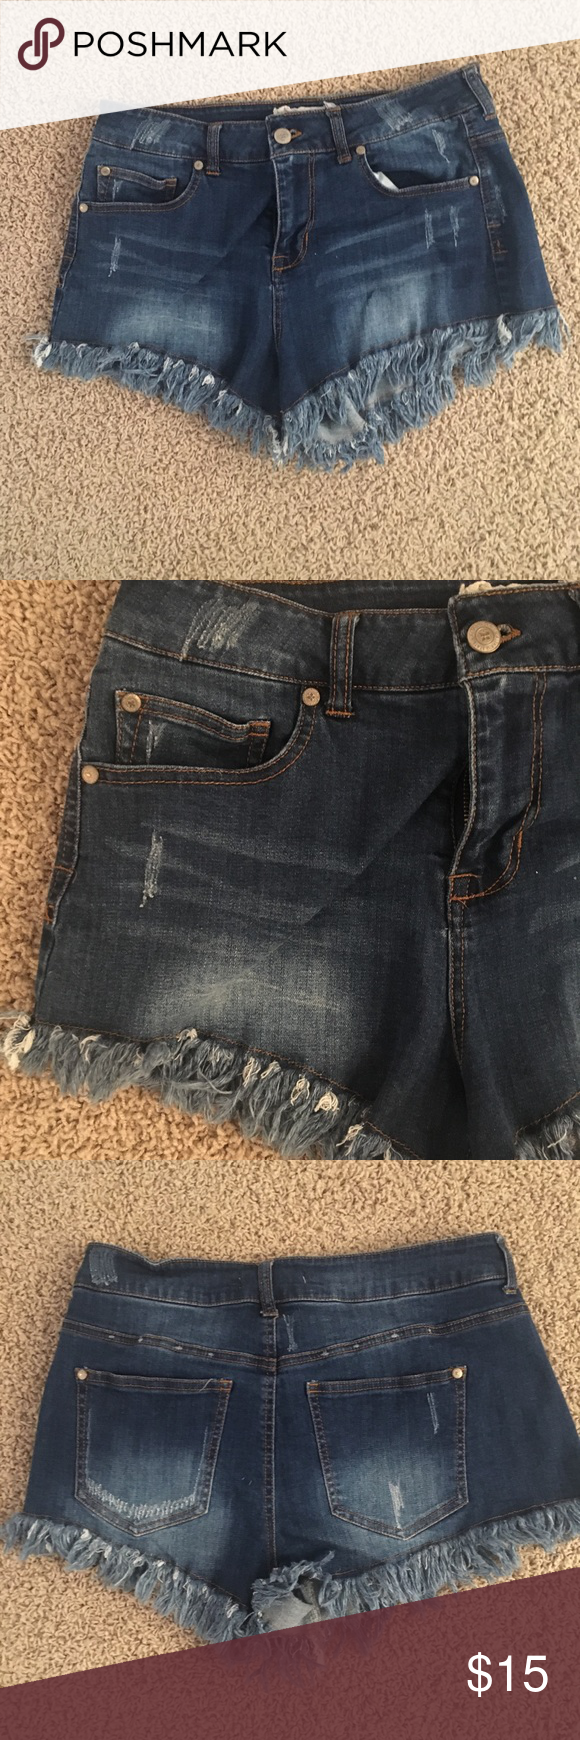 Denim cut off shorts Denim cut off shorts, only worn a couple times Altar'd State Shorts Jean Shorts